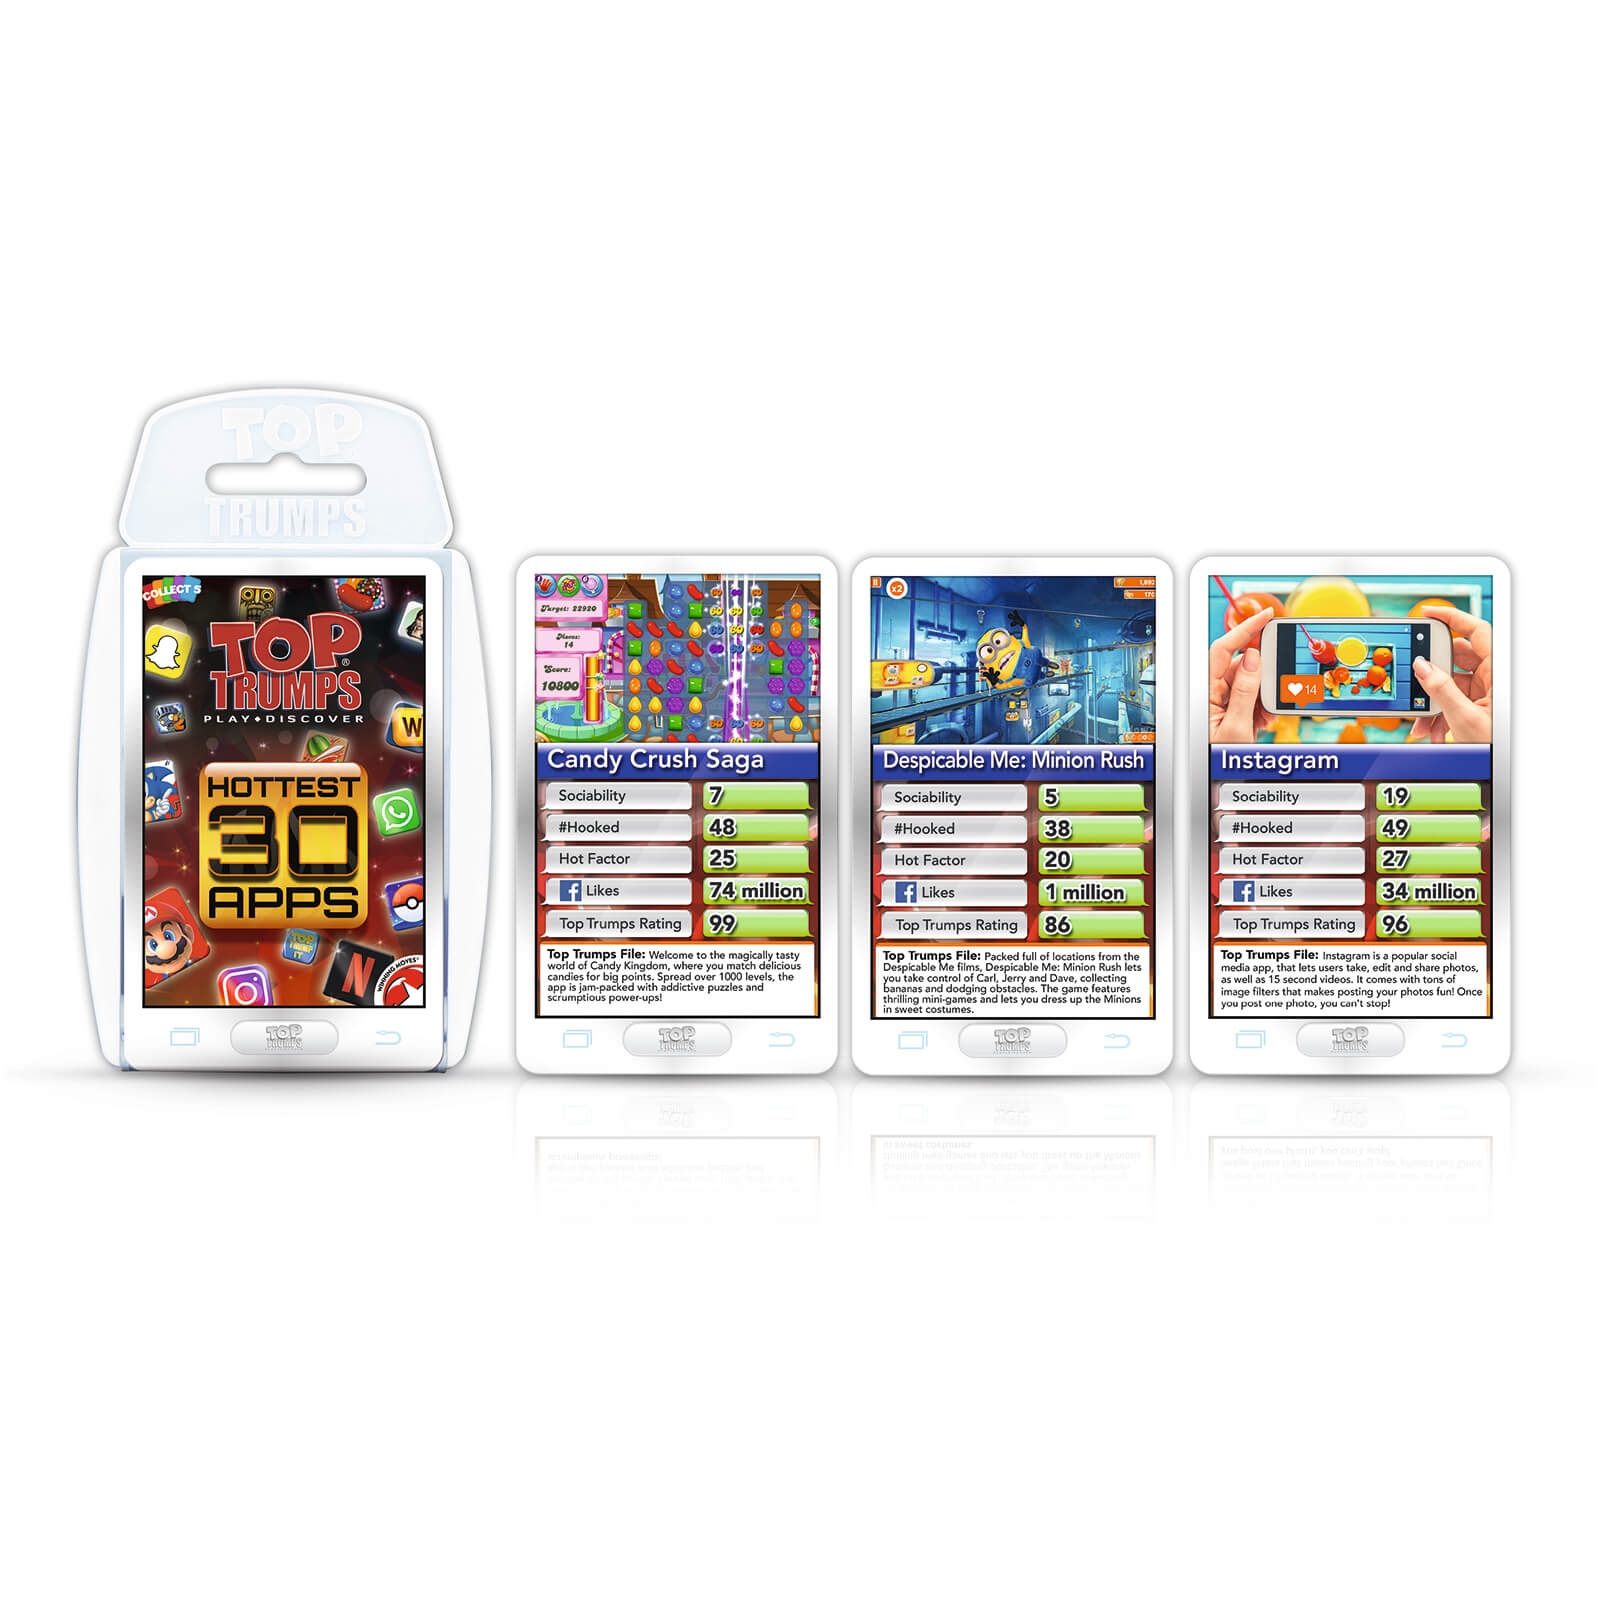 Image of Top Trumps Card Game - Hottest 30 Apps Edition